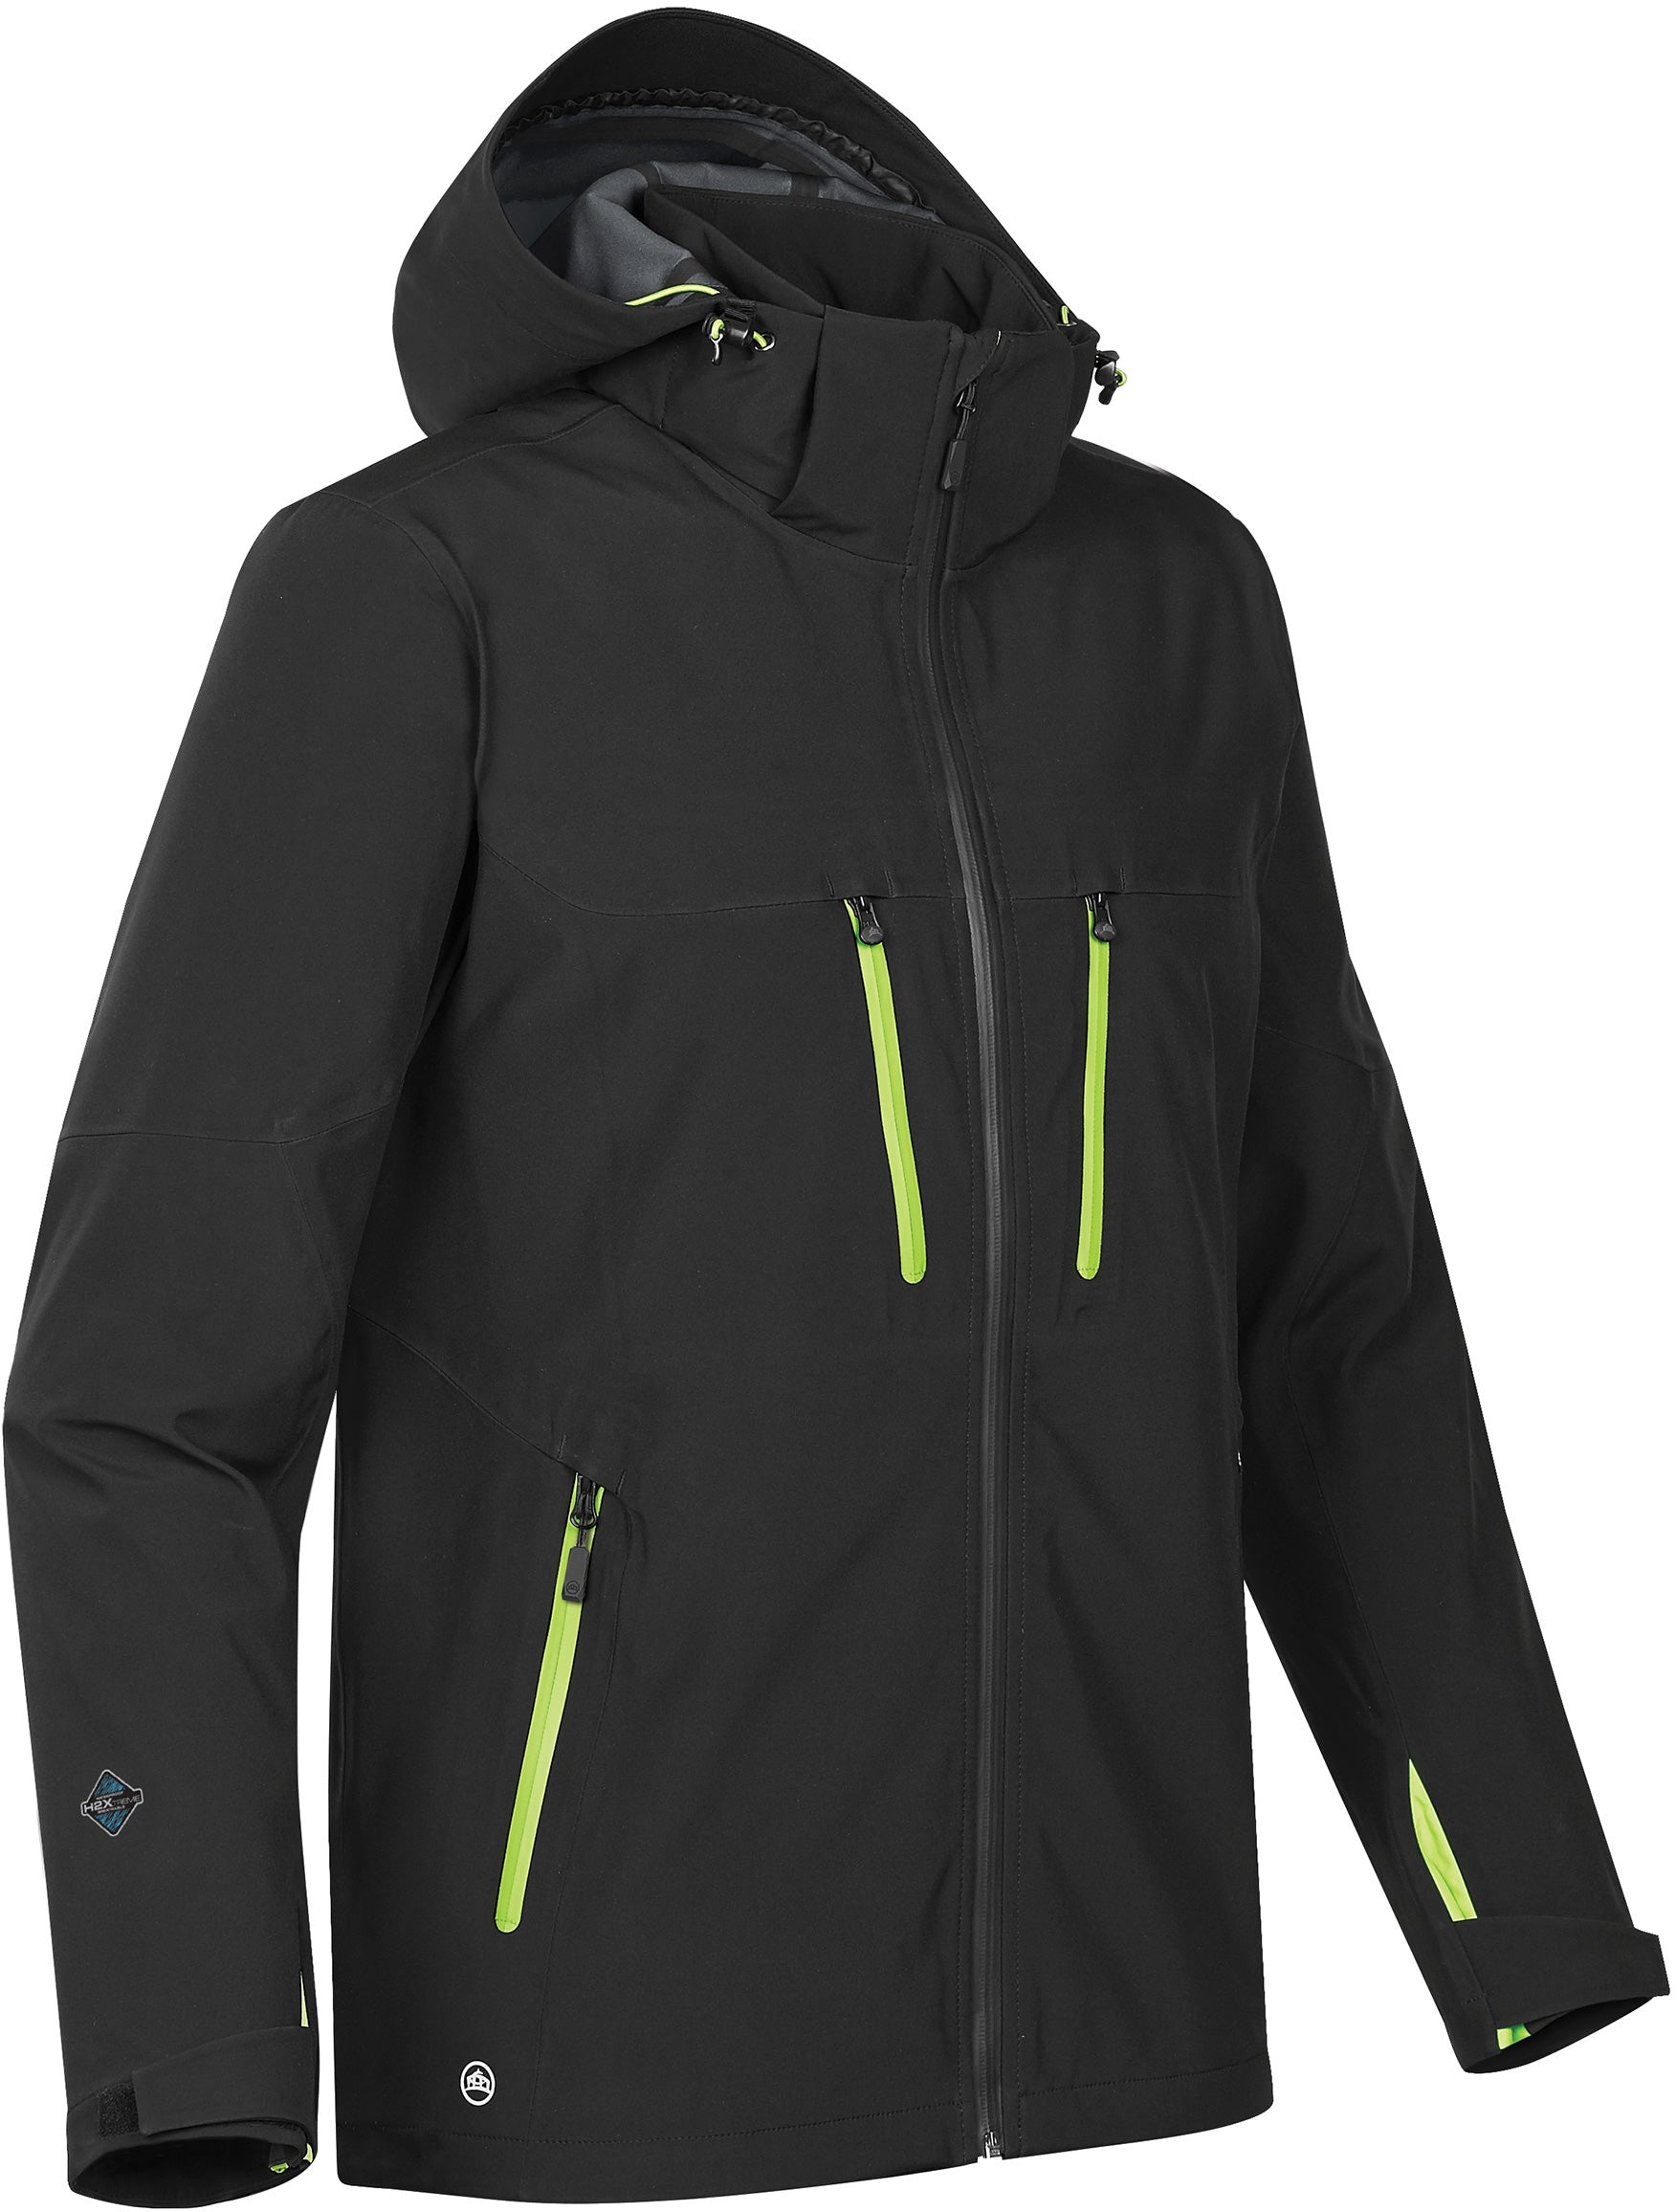 STORMTECH MEN'S PATROL SOFT SHELL JACKET